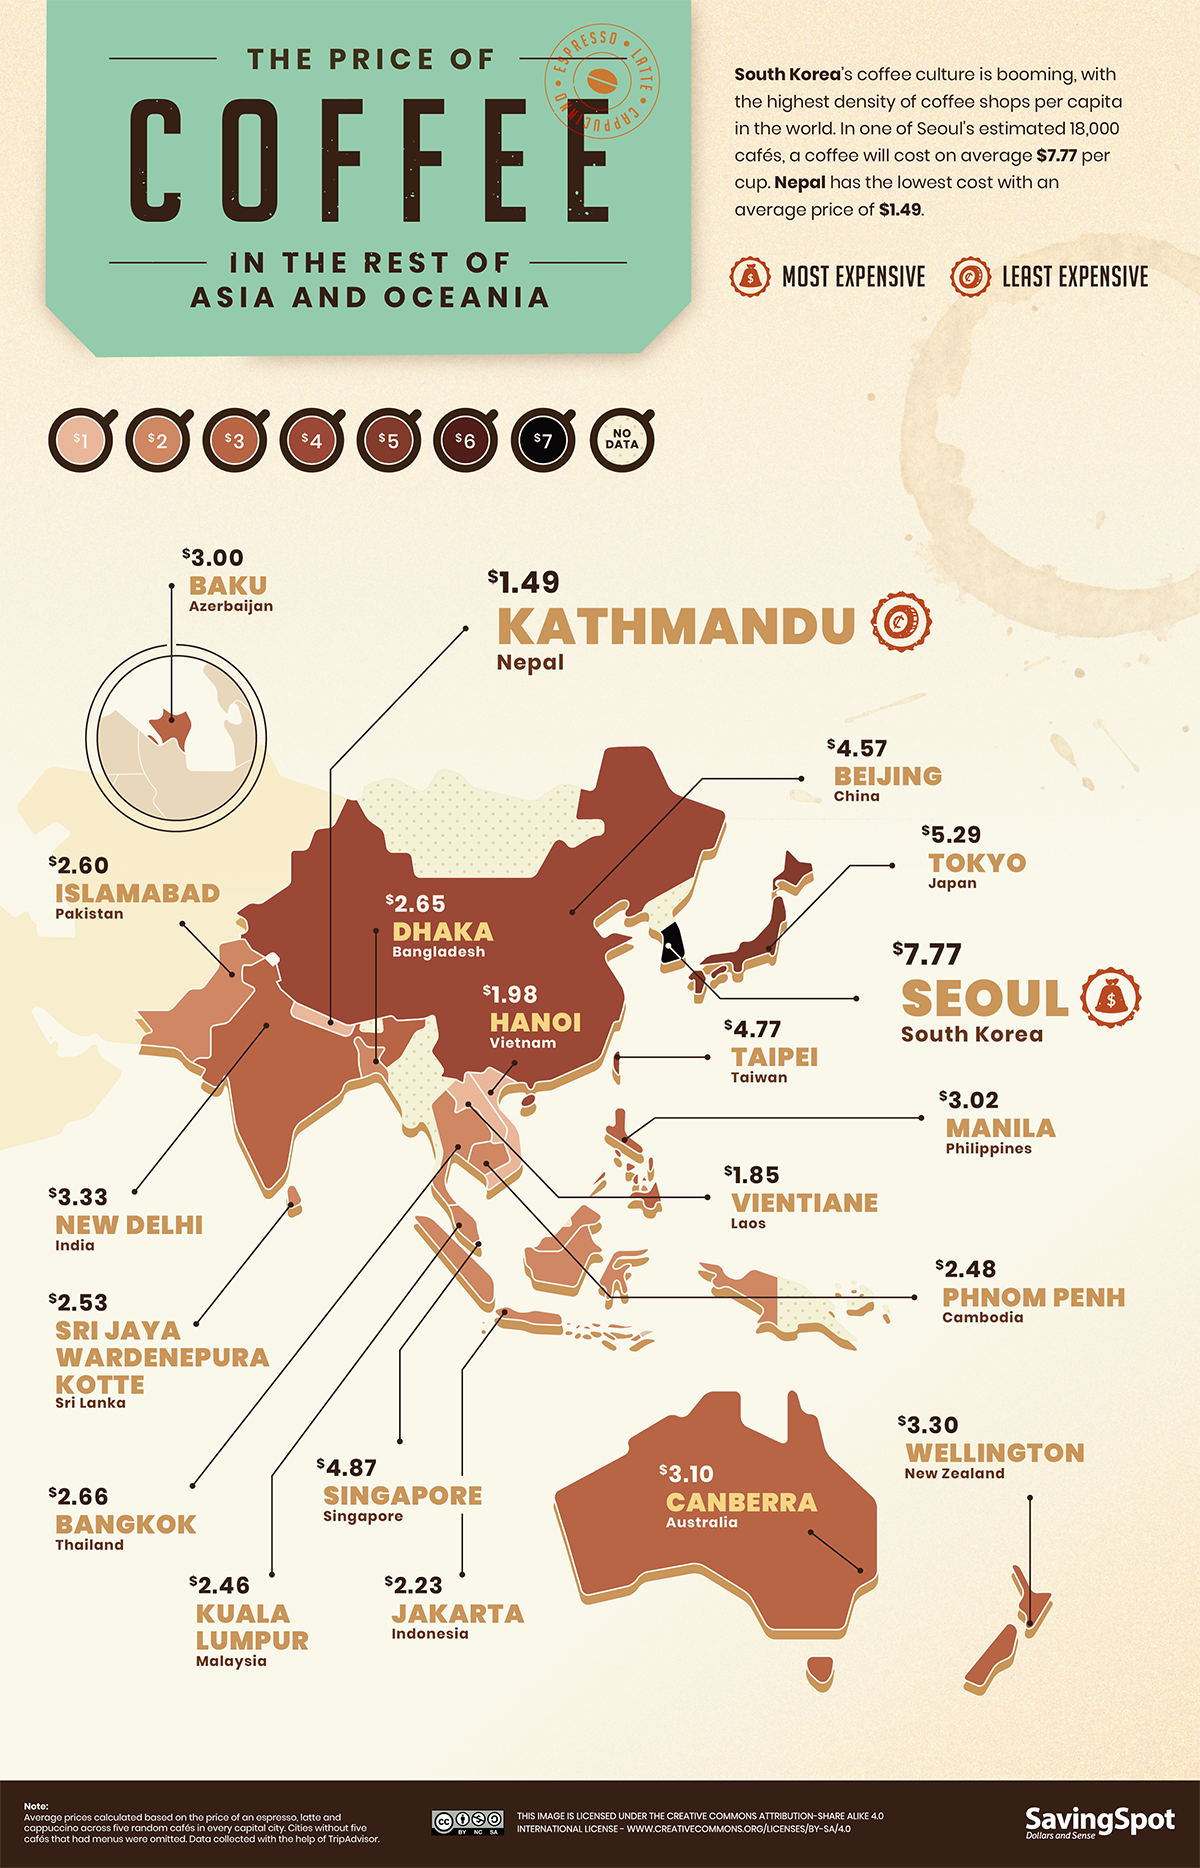 price of coffee in Rest of Asia & Oceania